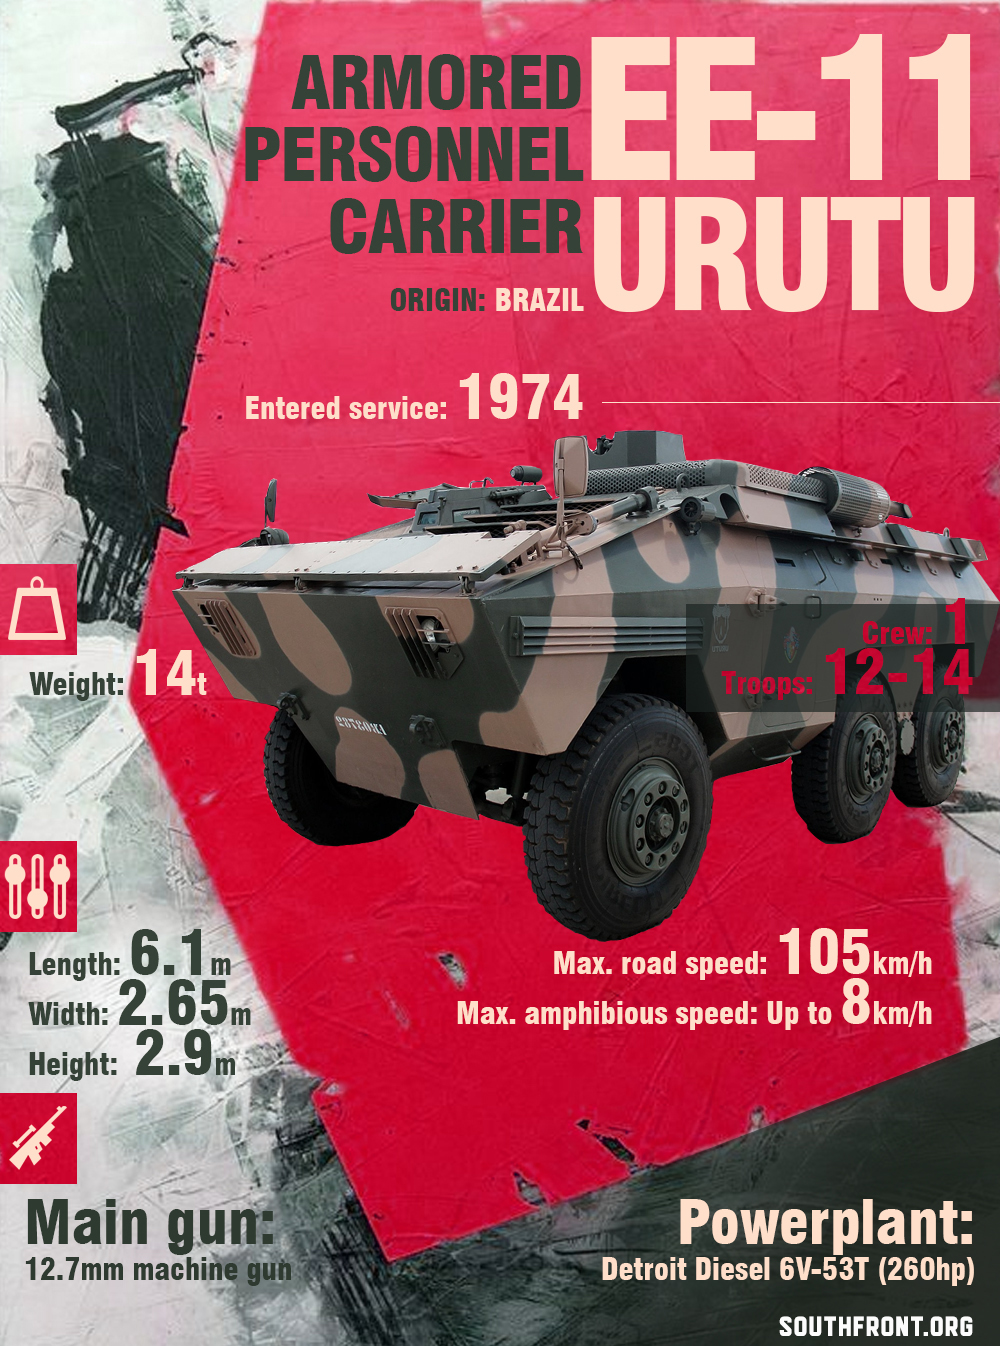 EE-11 Urutu Armored Personnel Carrier (Infographics)